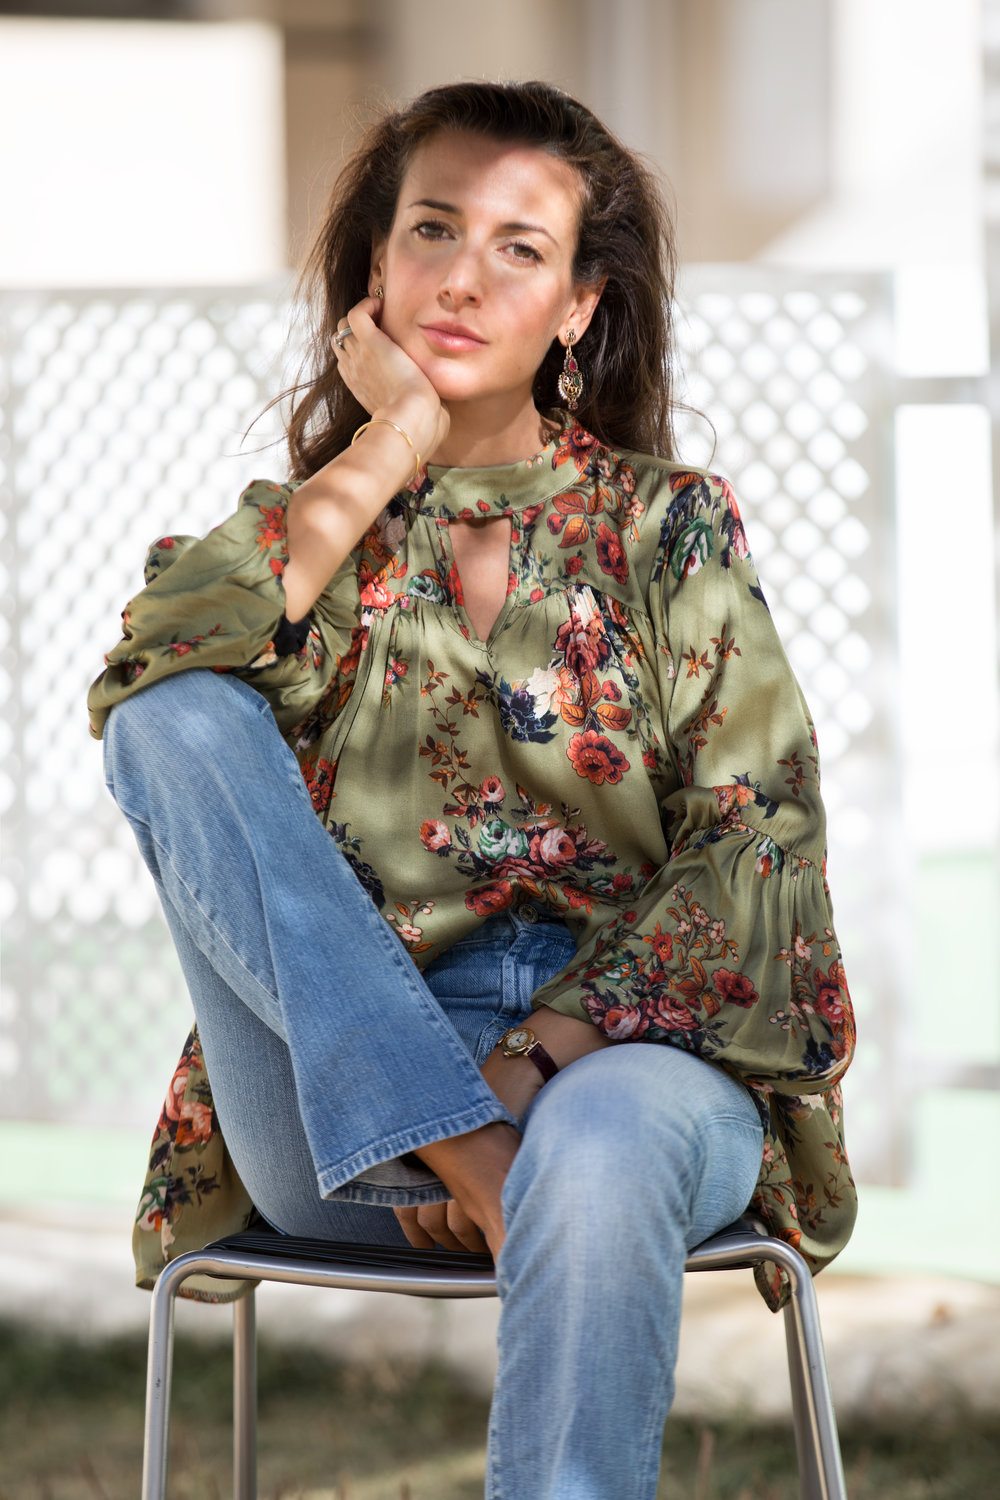 ROMANTIC BLOUSE TO WEAR WITH YOUR JEANS  NOVEMBER 20, 2017 - With a romantic blouse you will look wonderful day and night, a touch of feminine whimsy to any outfit, a pretty contrast to blazers...read more